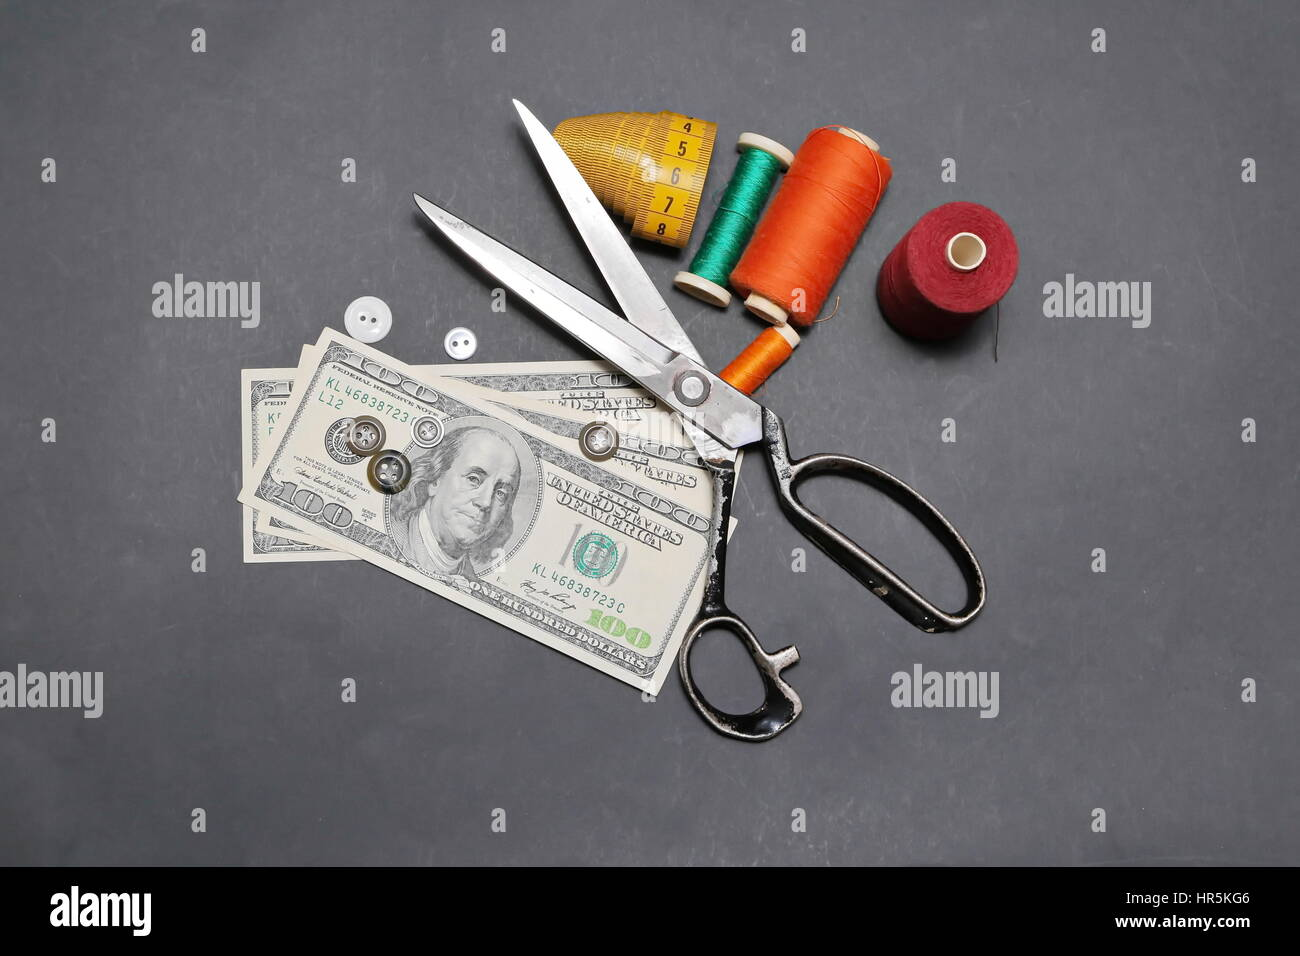 Can you make money sewing. American dollars and  accessories for cutting and sewing - Stock Image